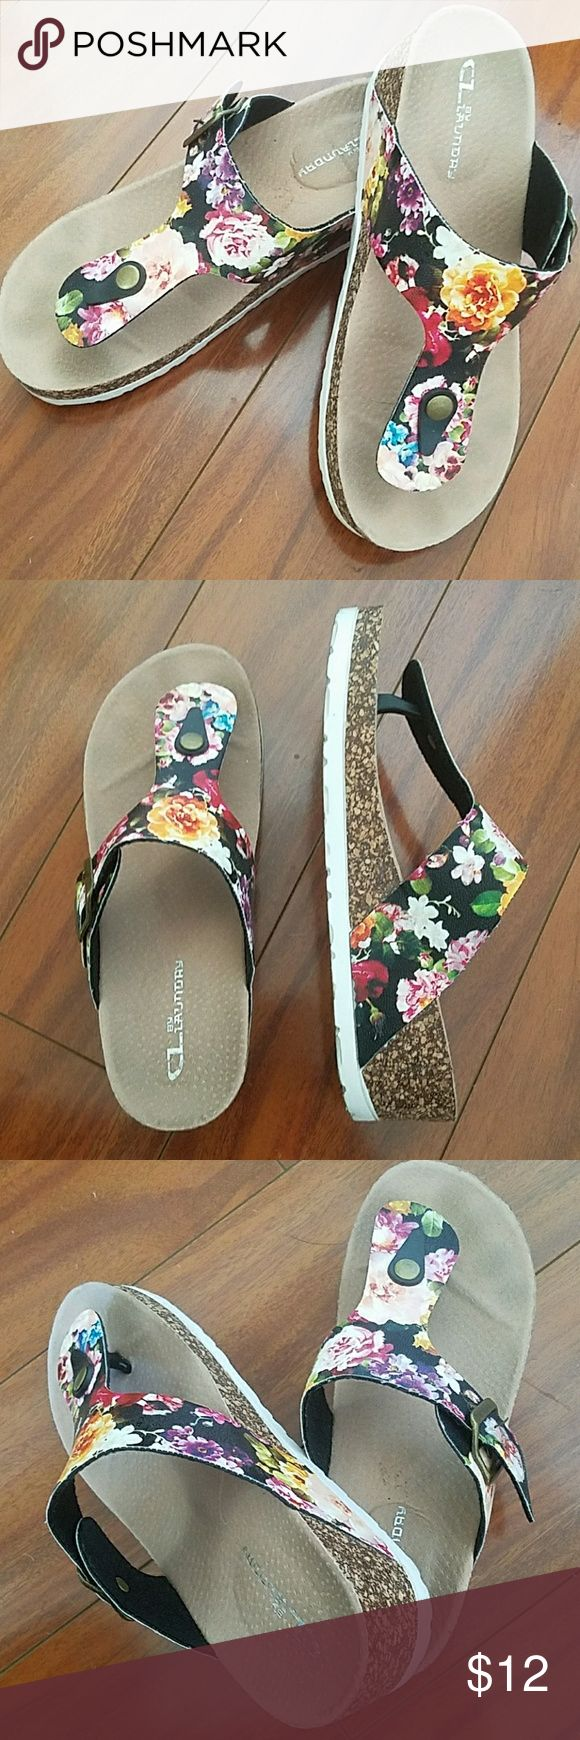 🆕Floral slippers Like new. Floral print slippers great for adding flare to your outfit. Rarely used. Feel free to ask any questions prior to purchase. Shoes Slippers